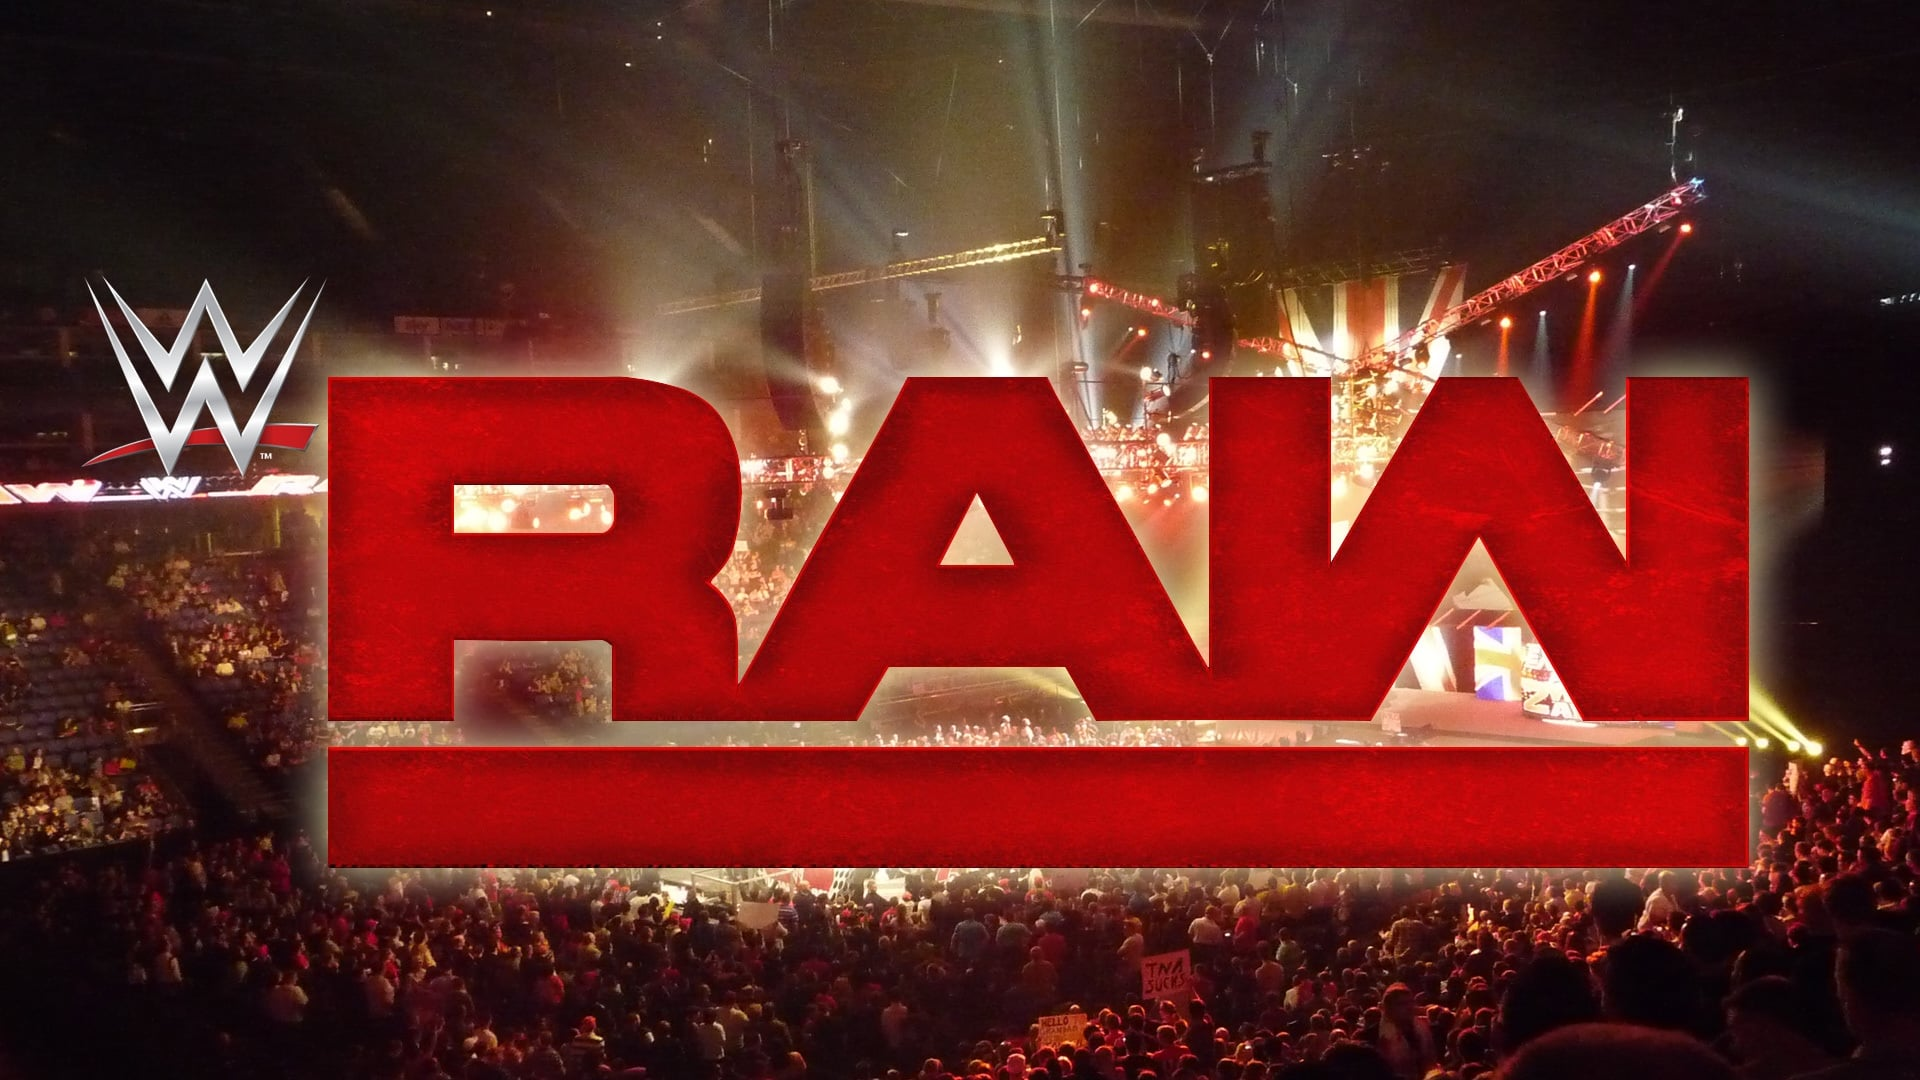 WWE Raw - Season 21 Episode 37 : September 16, 2013 (1970)